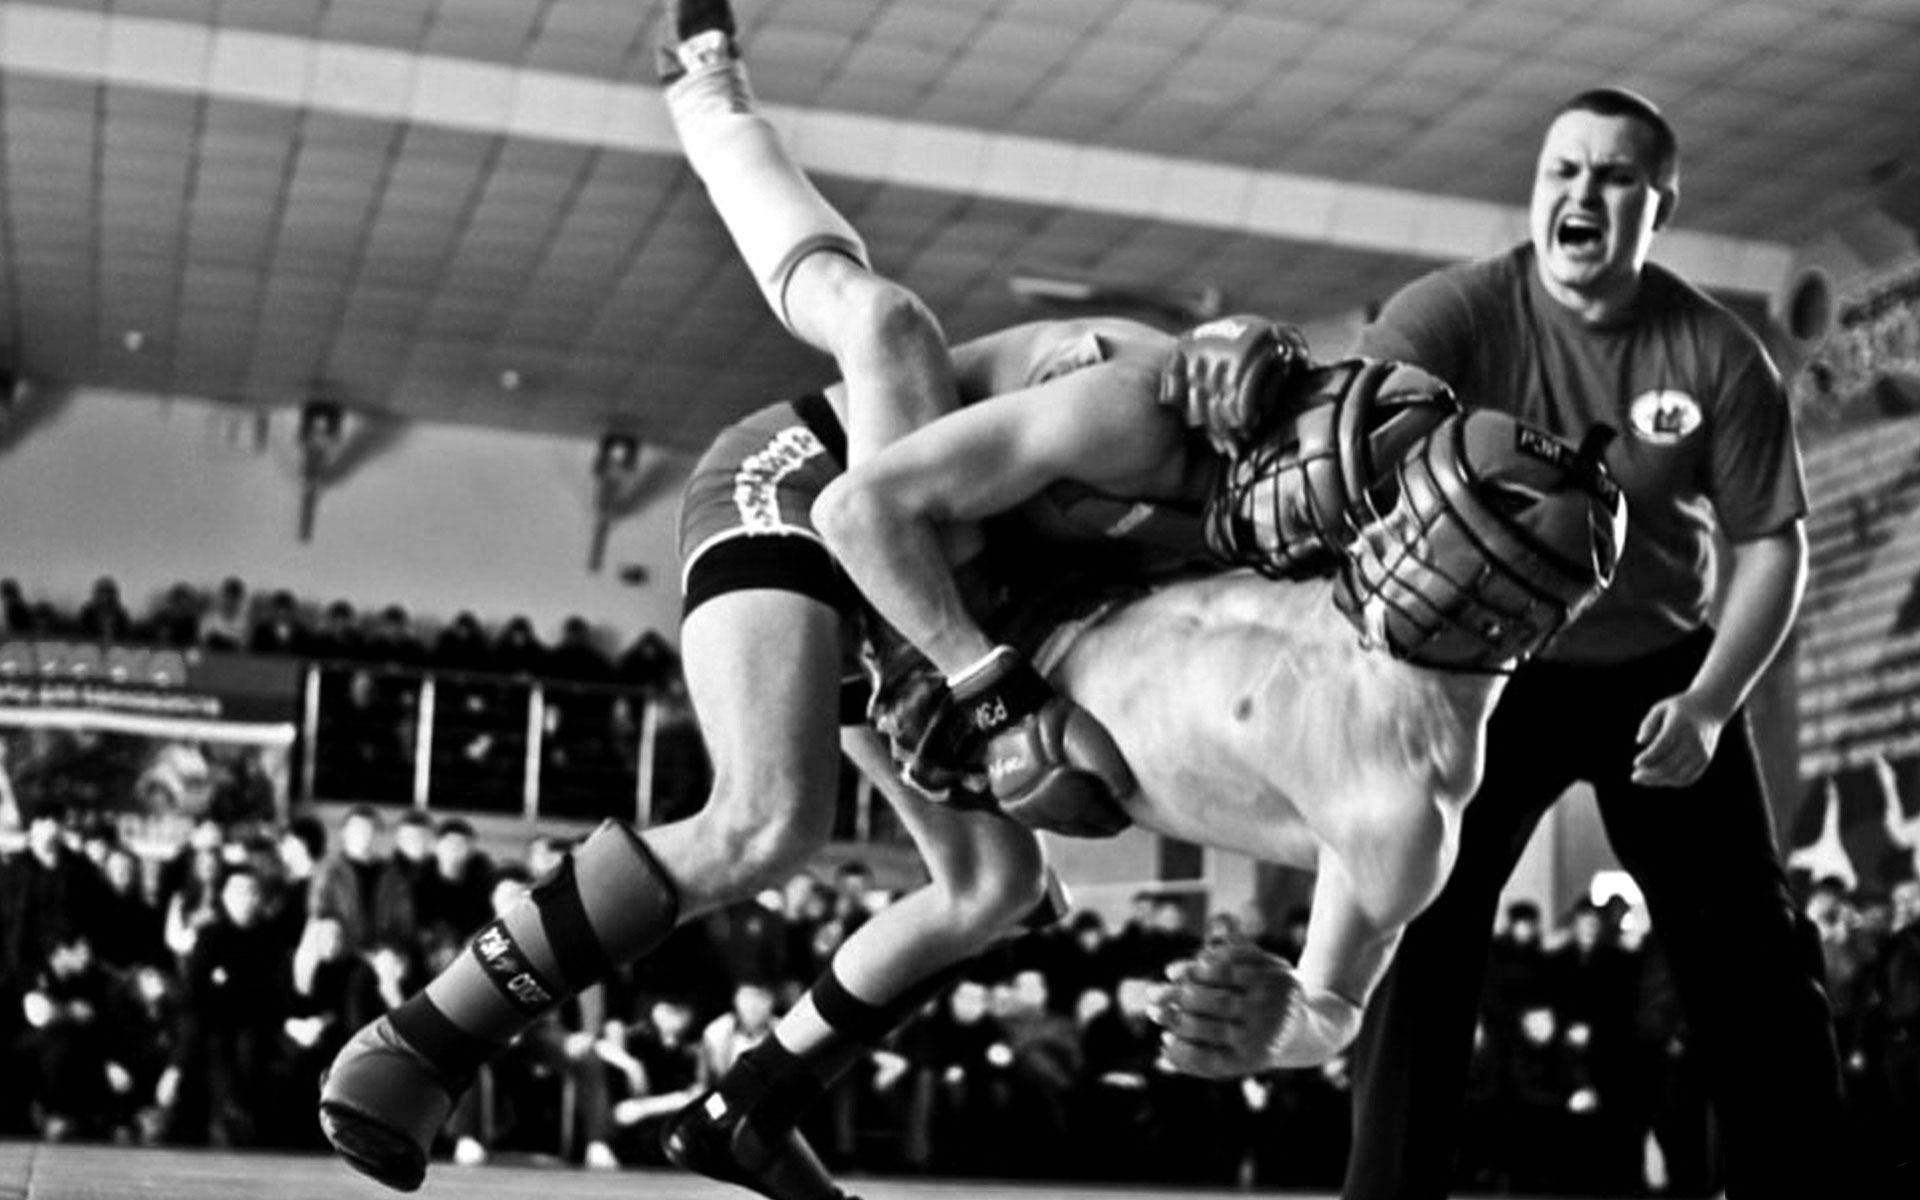 ROOTS OF MMA: MODERN PANKRATION